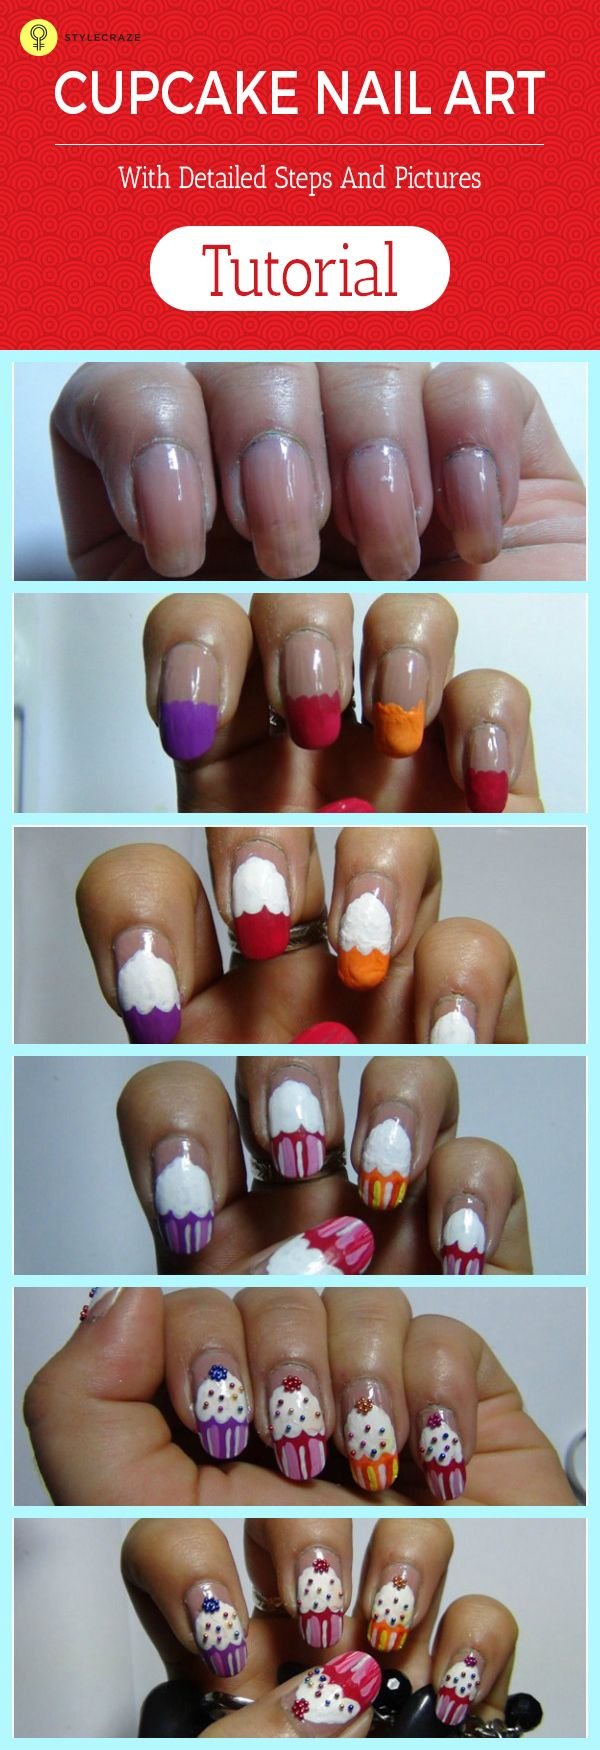 How To Do Nail Art At Home Pinterest